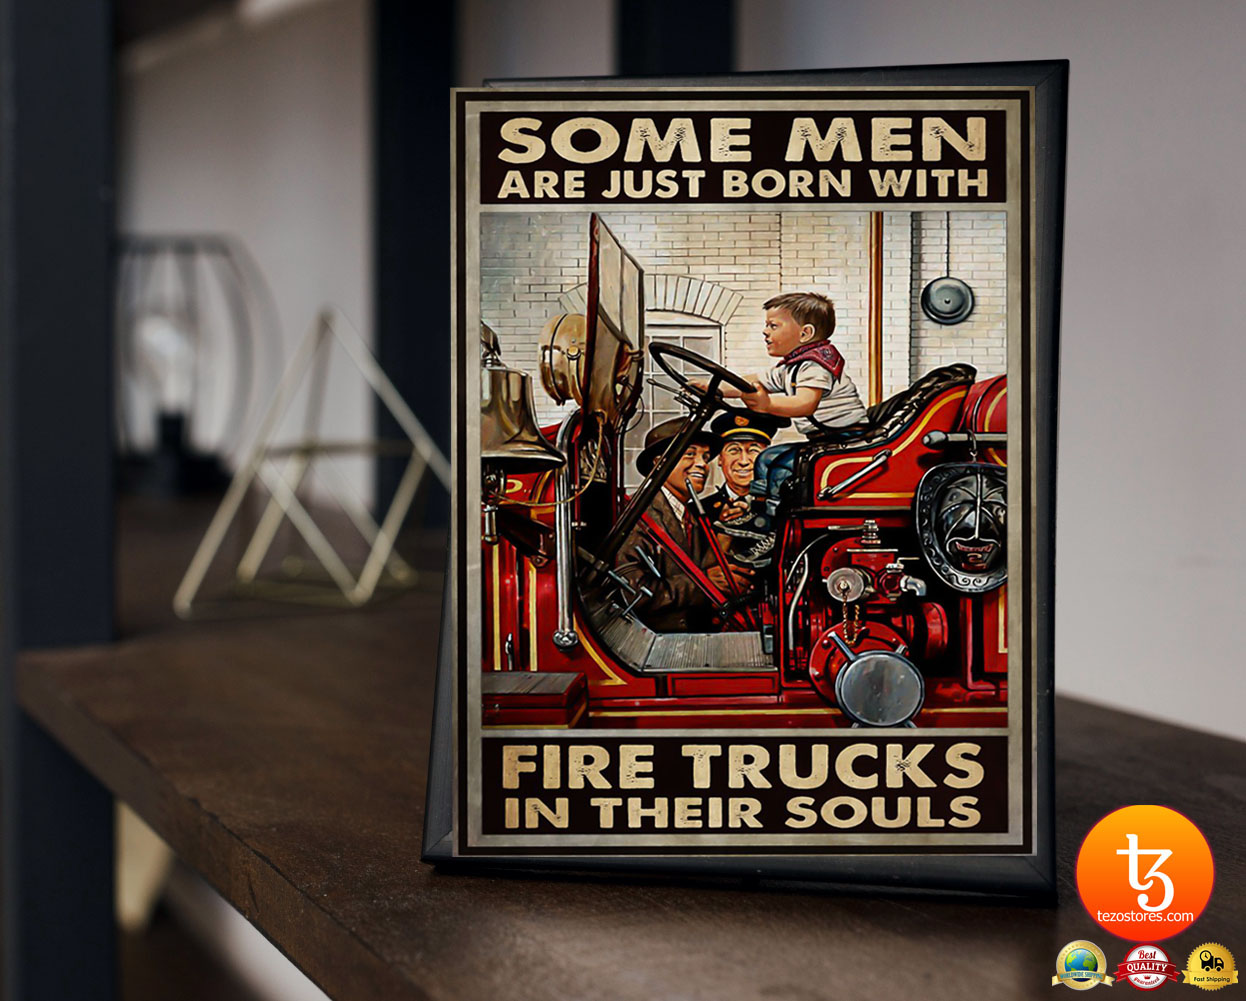 Some men are just born with fire trucks in their souls poster 19